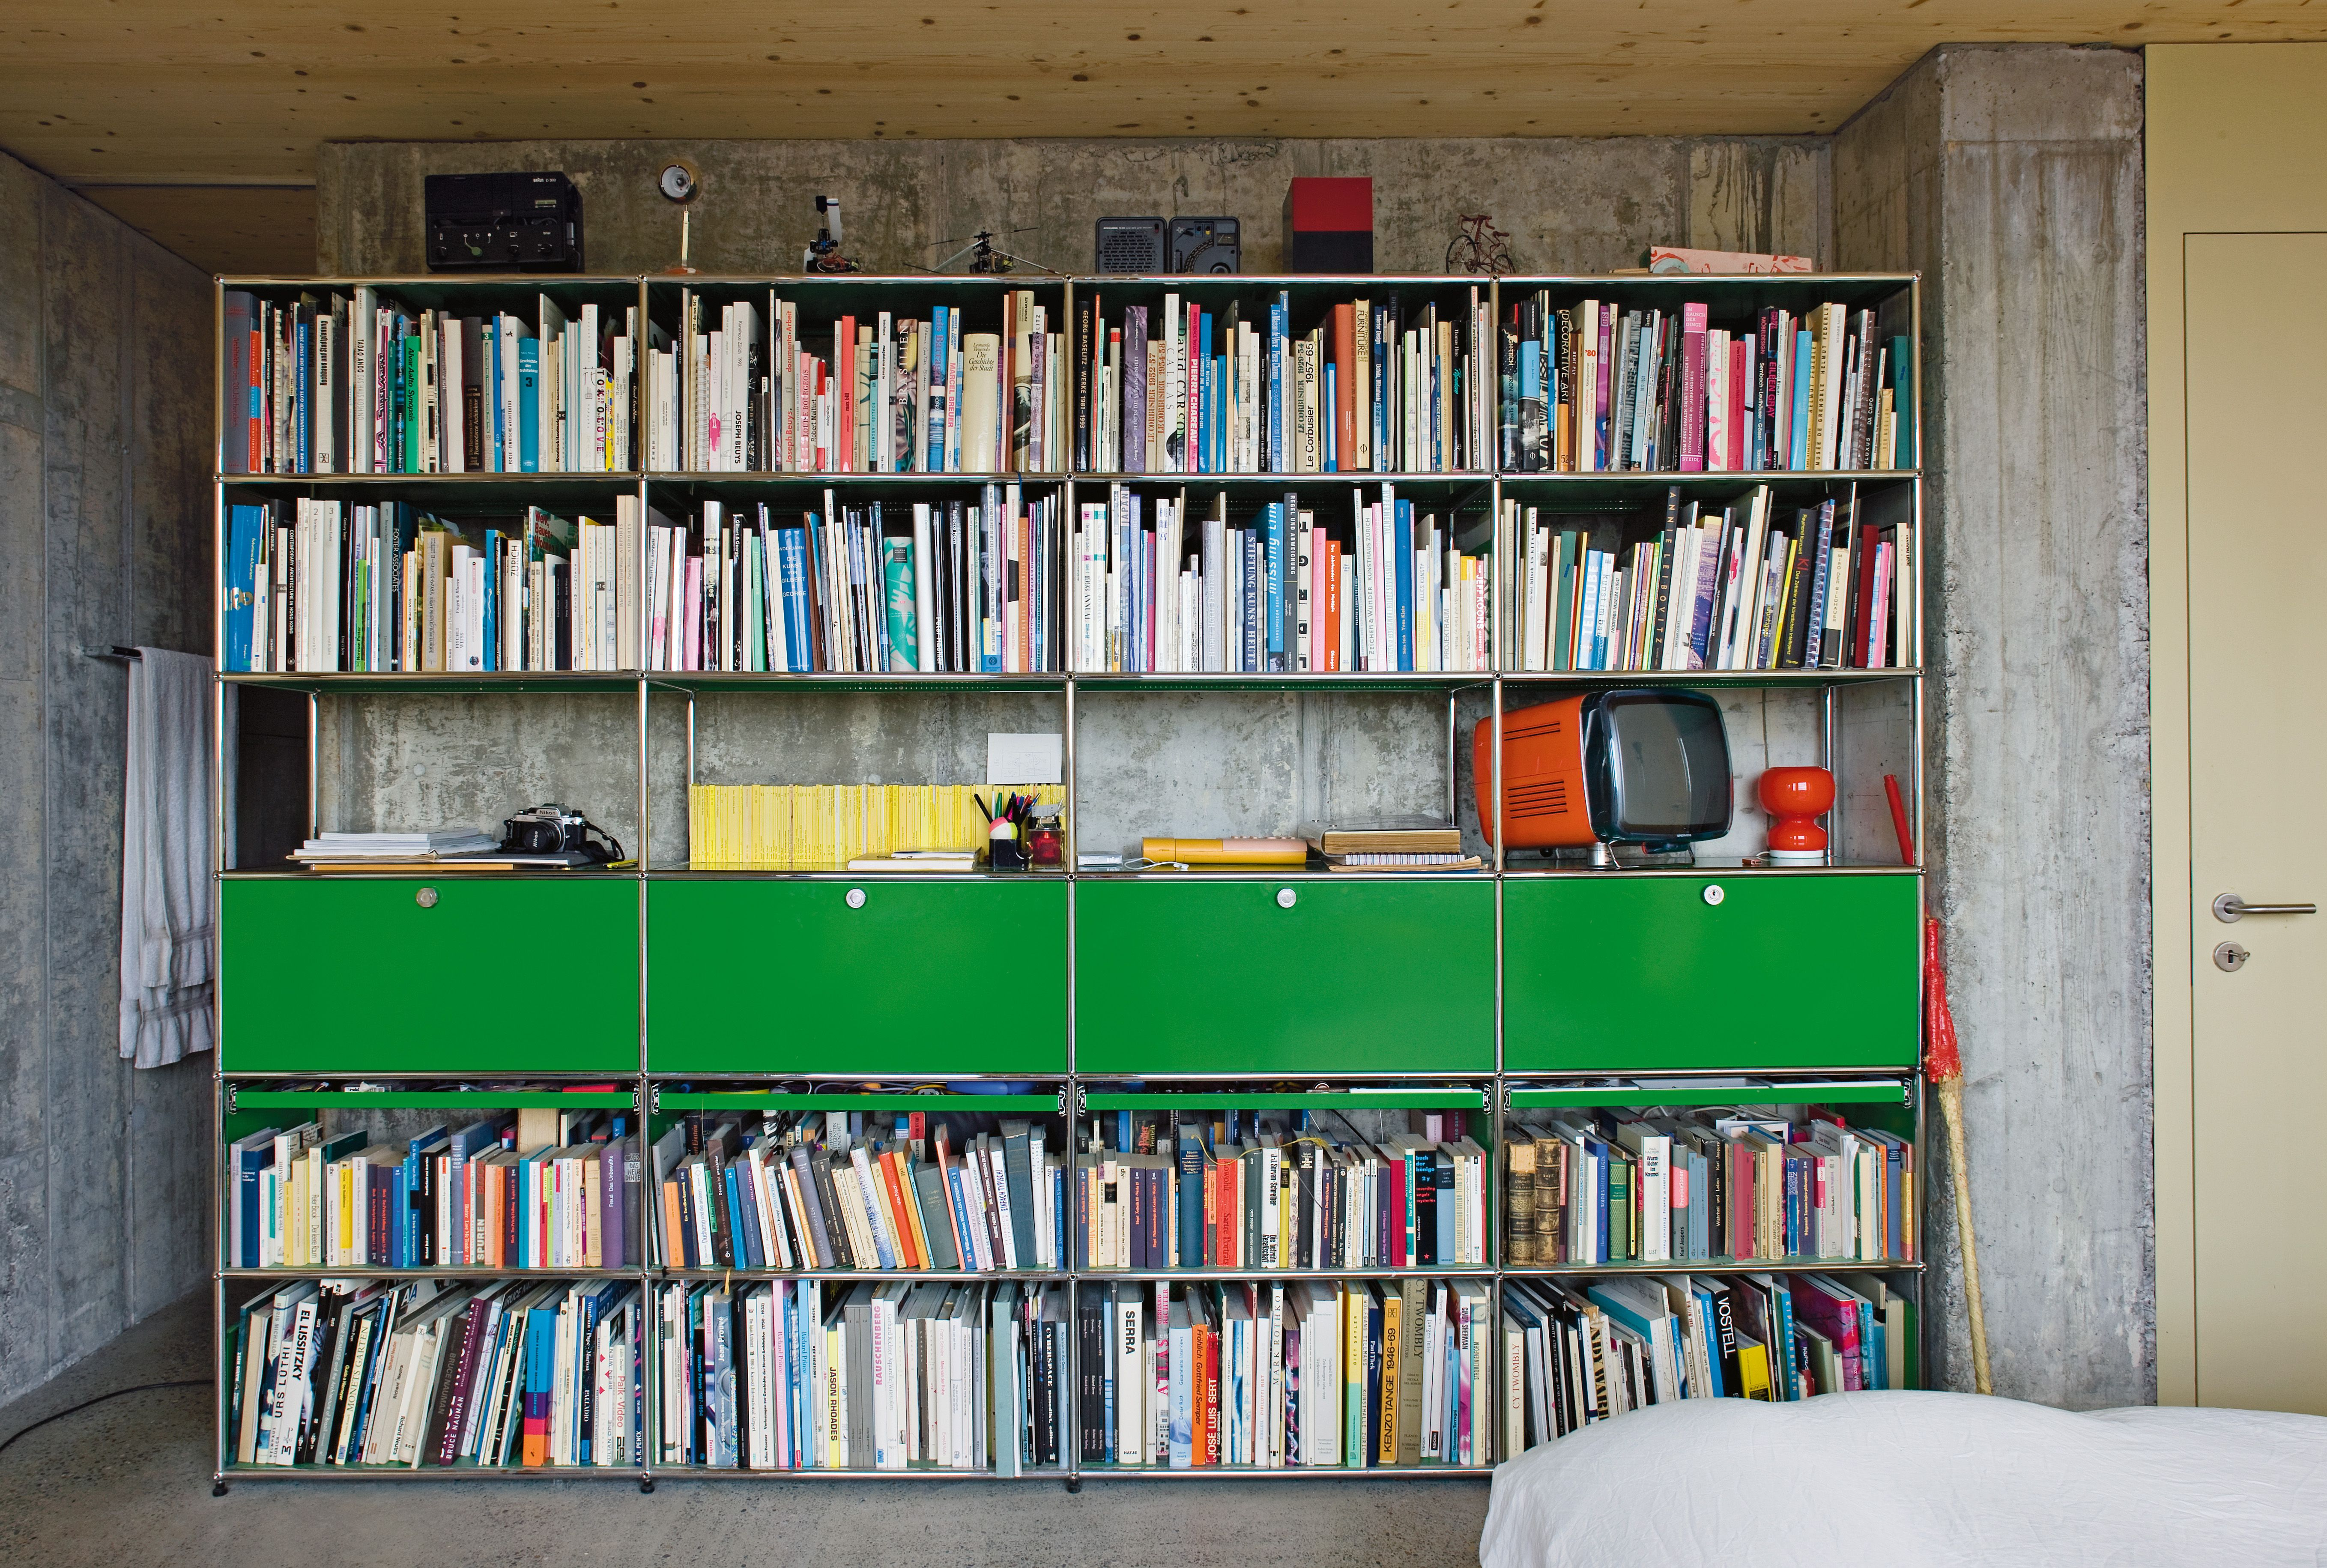 usm modular furniture product usm haller bookshelves house a modern design classic the usm haller modular furniture system was designed in this modular bookcase is customizable with drawers and doors